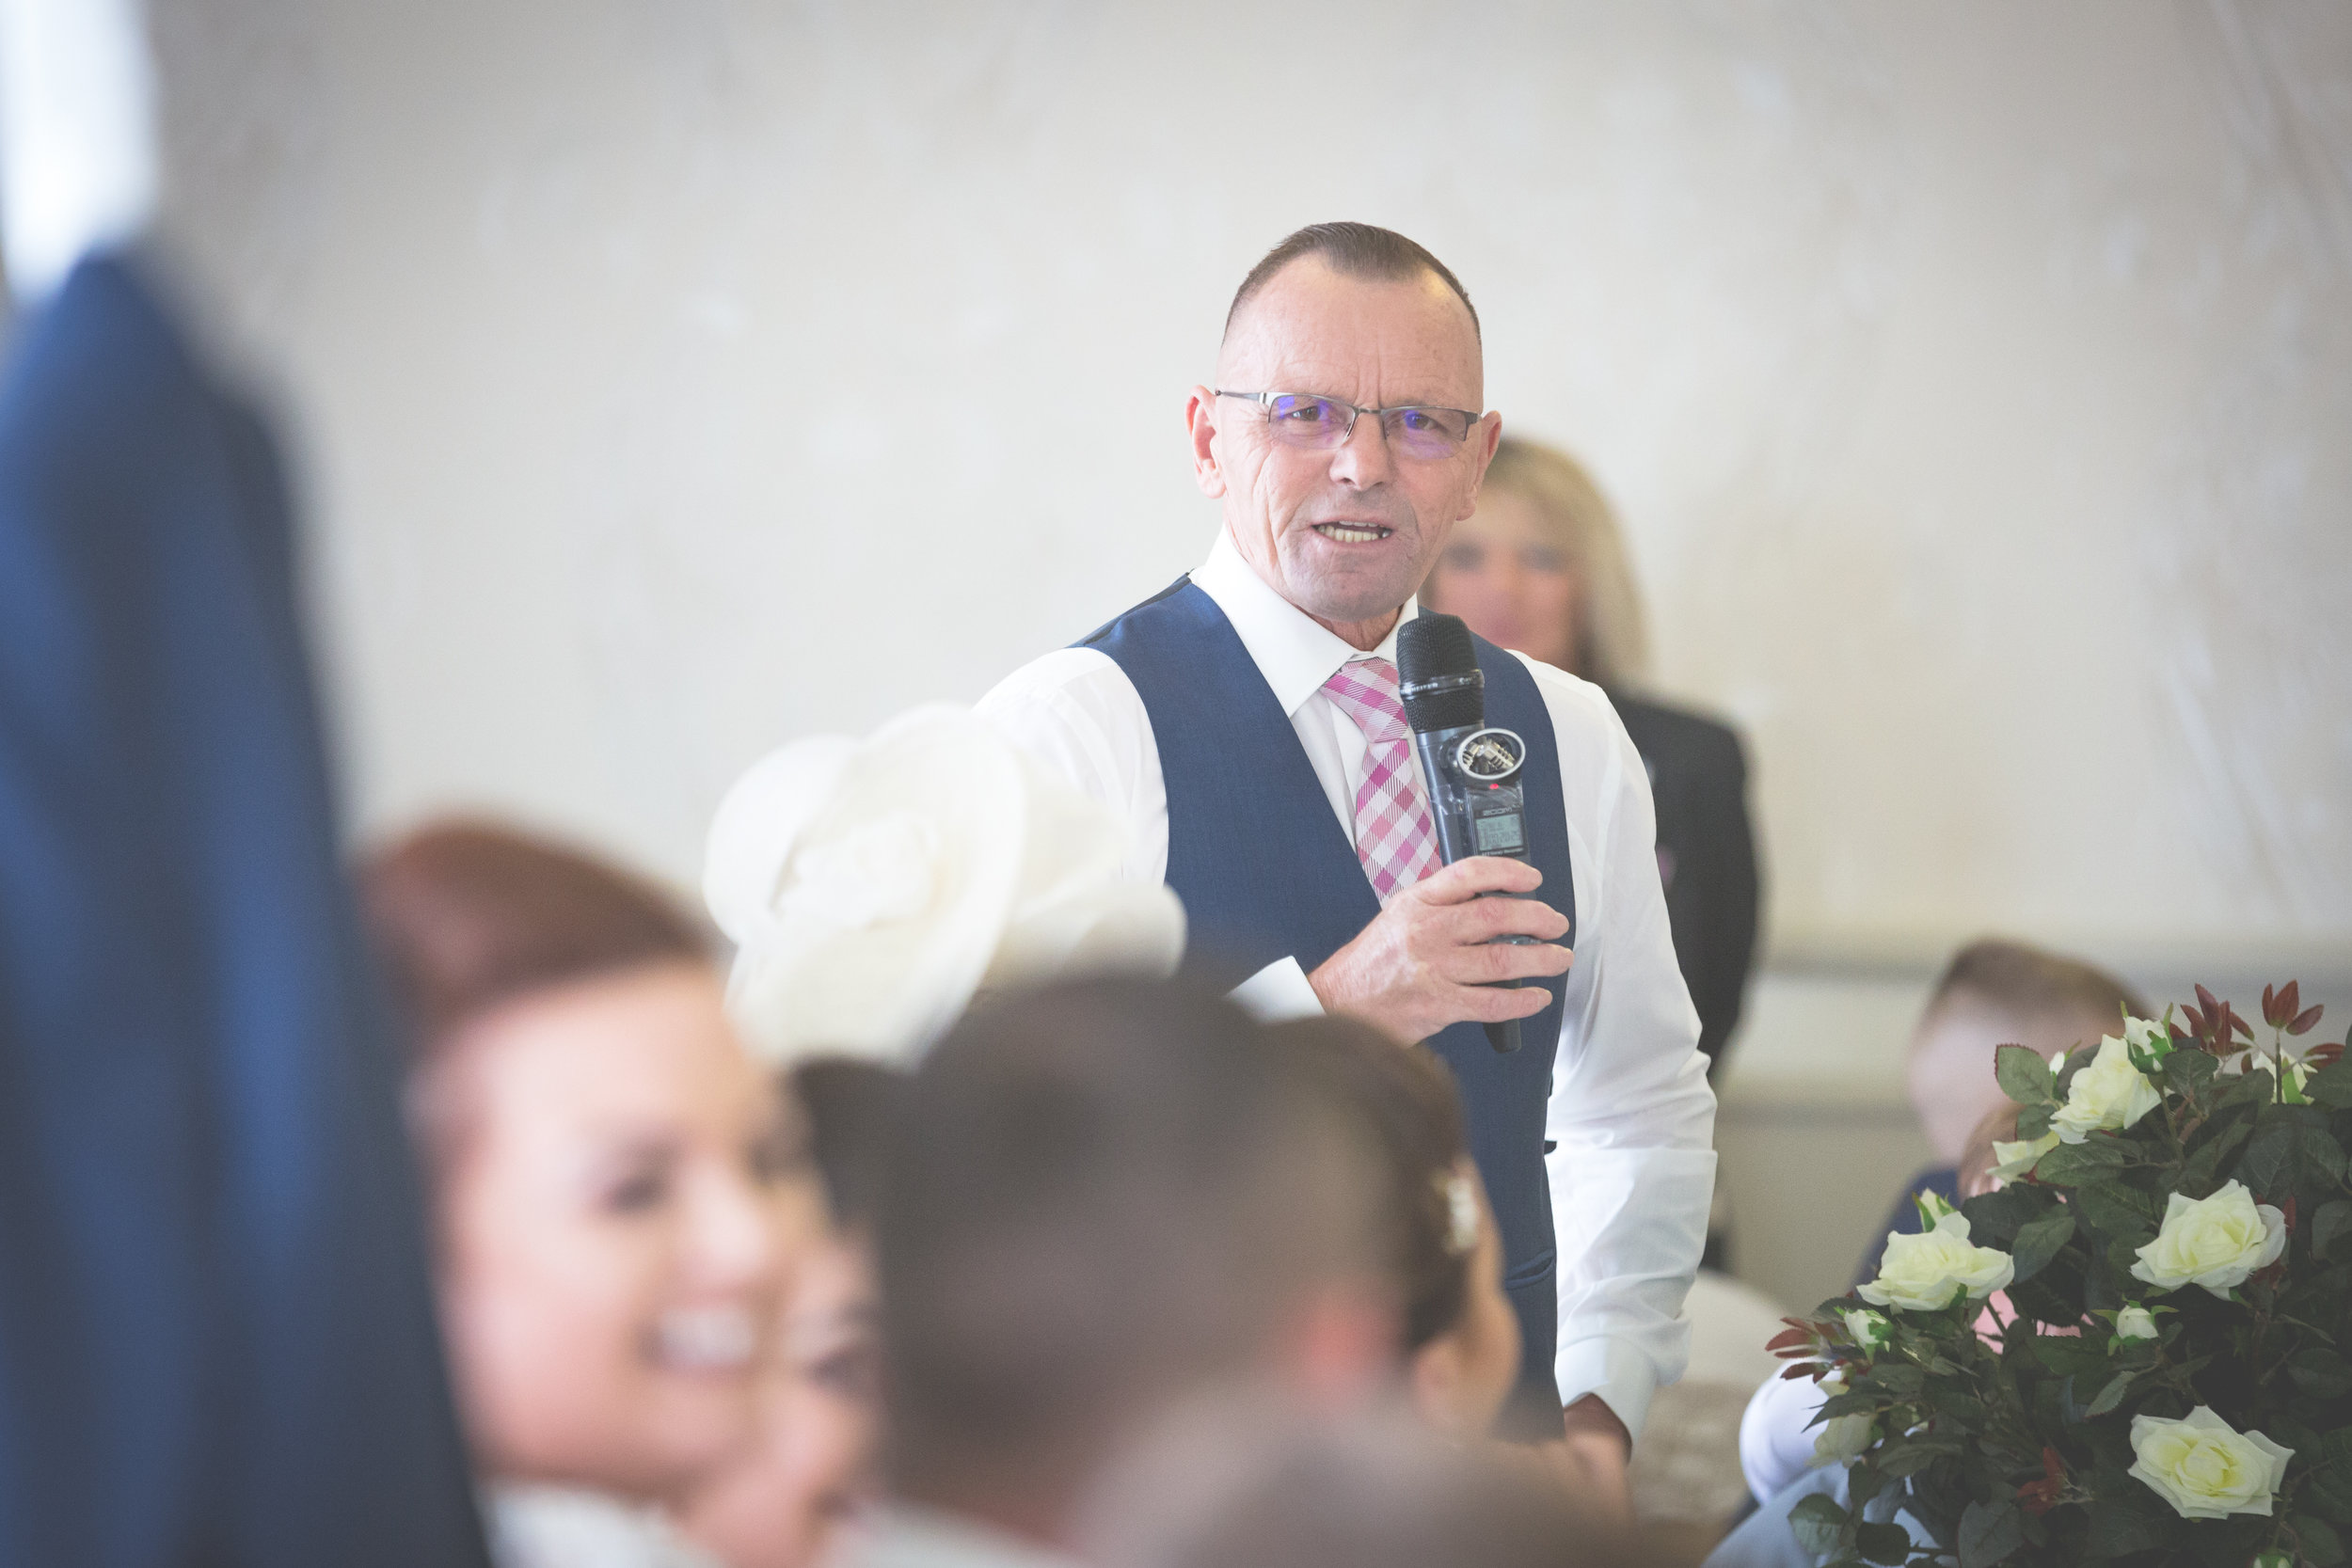 Antoinette & Stephen - Speeches | Brian McEwan Photography | Wedding Photographer Northern Ireland 24.jpg